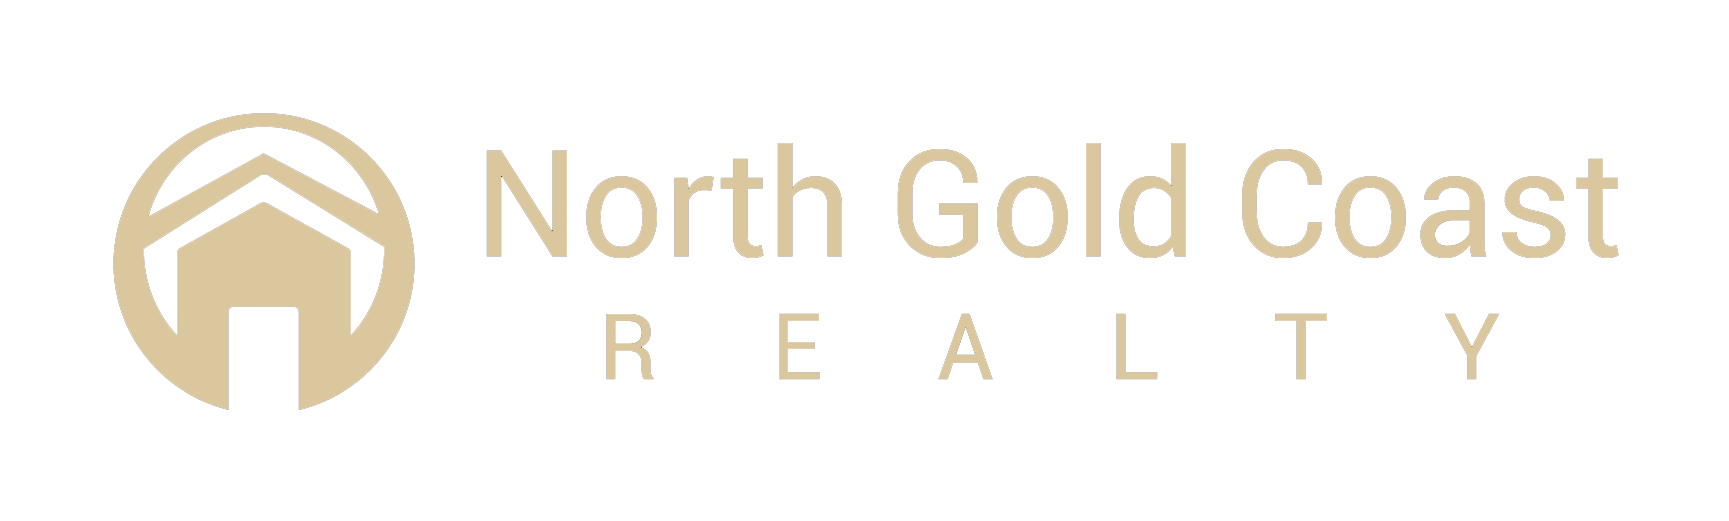 North Gold Coast Pty Ltd